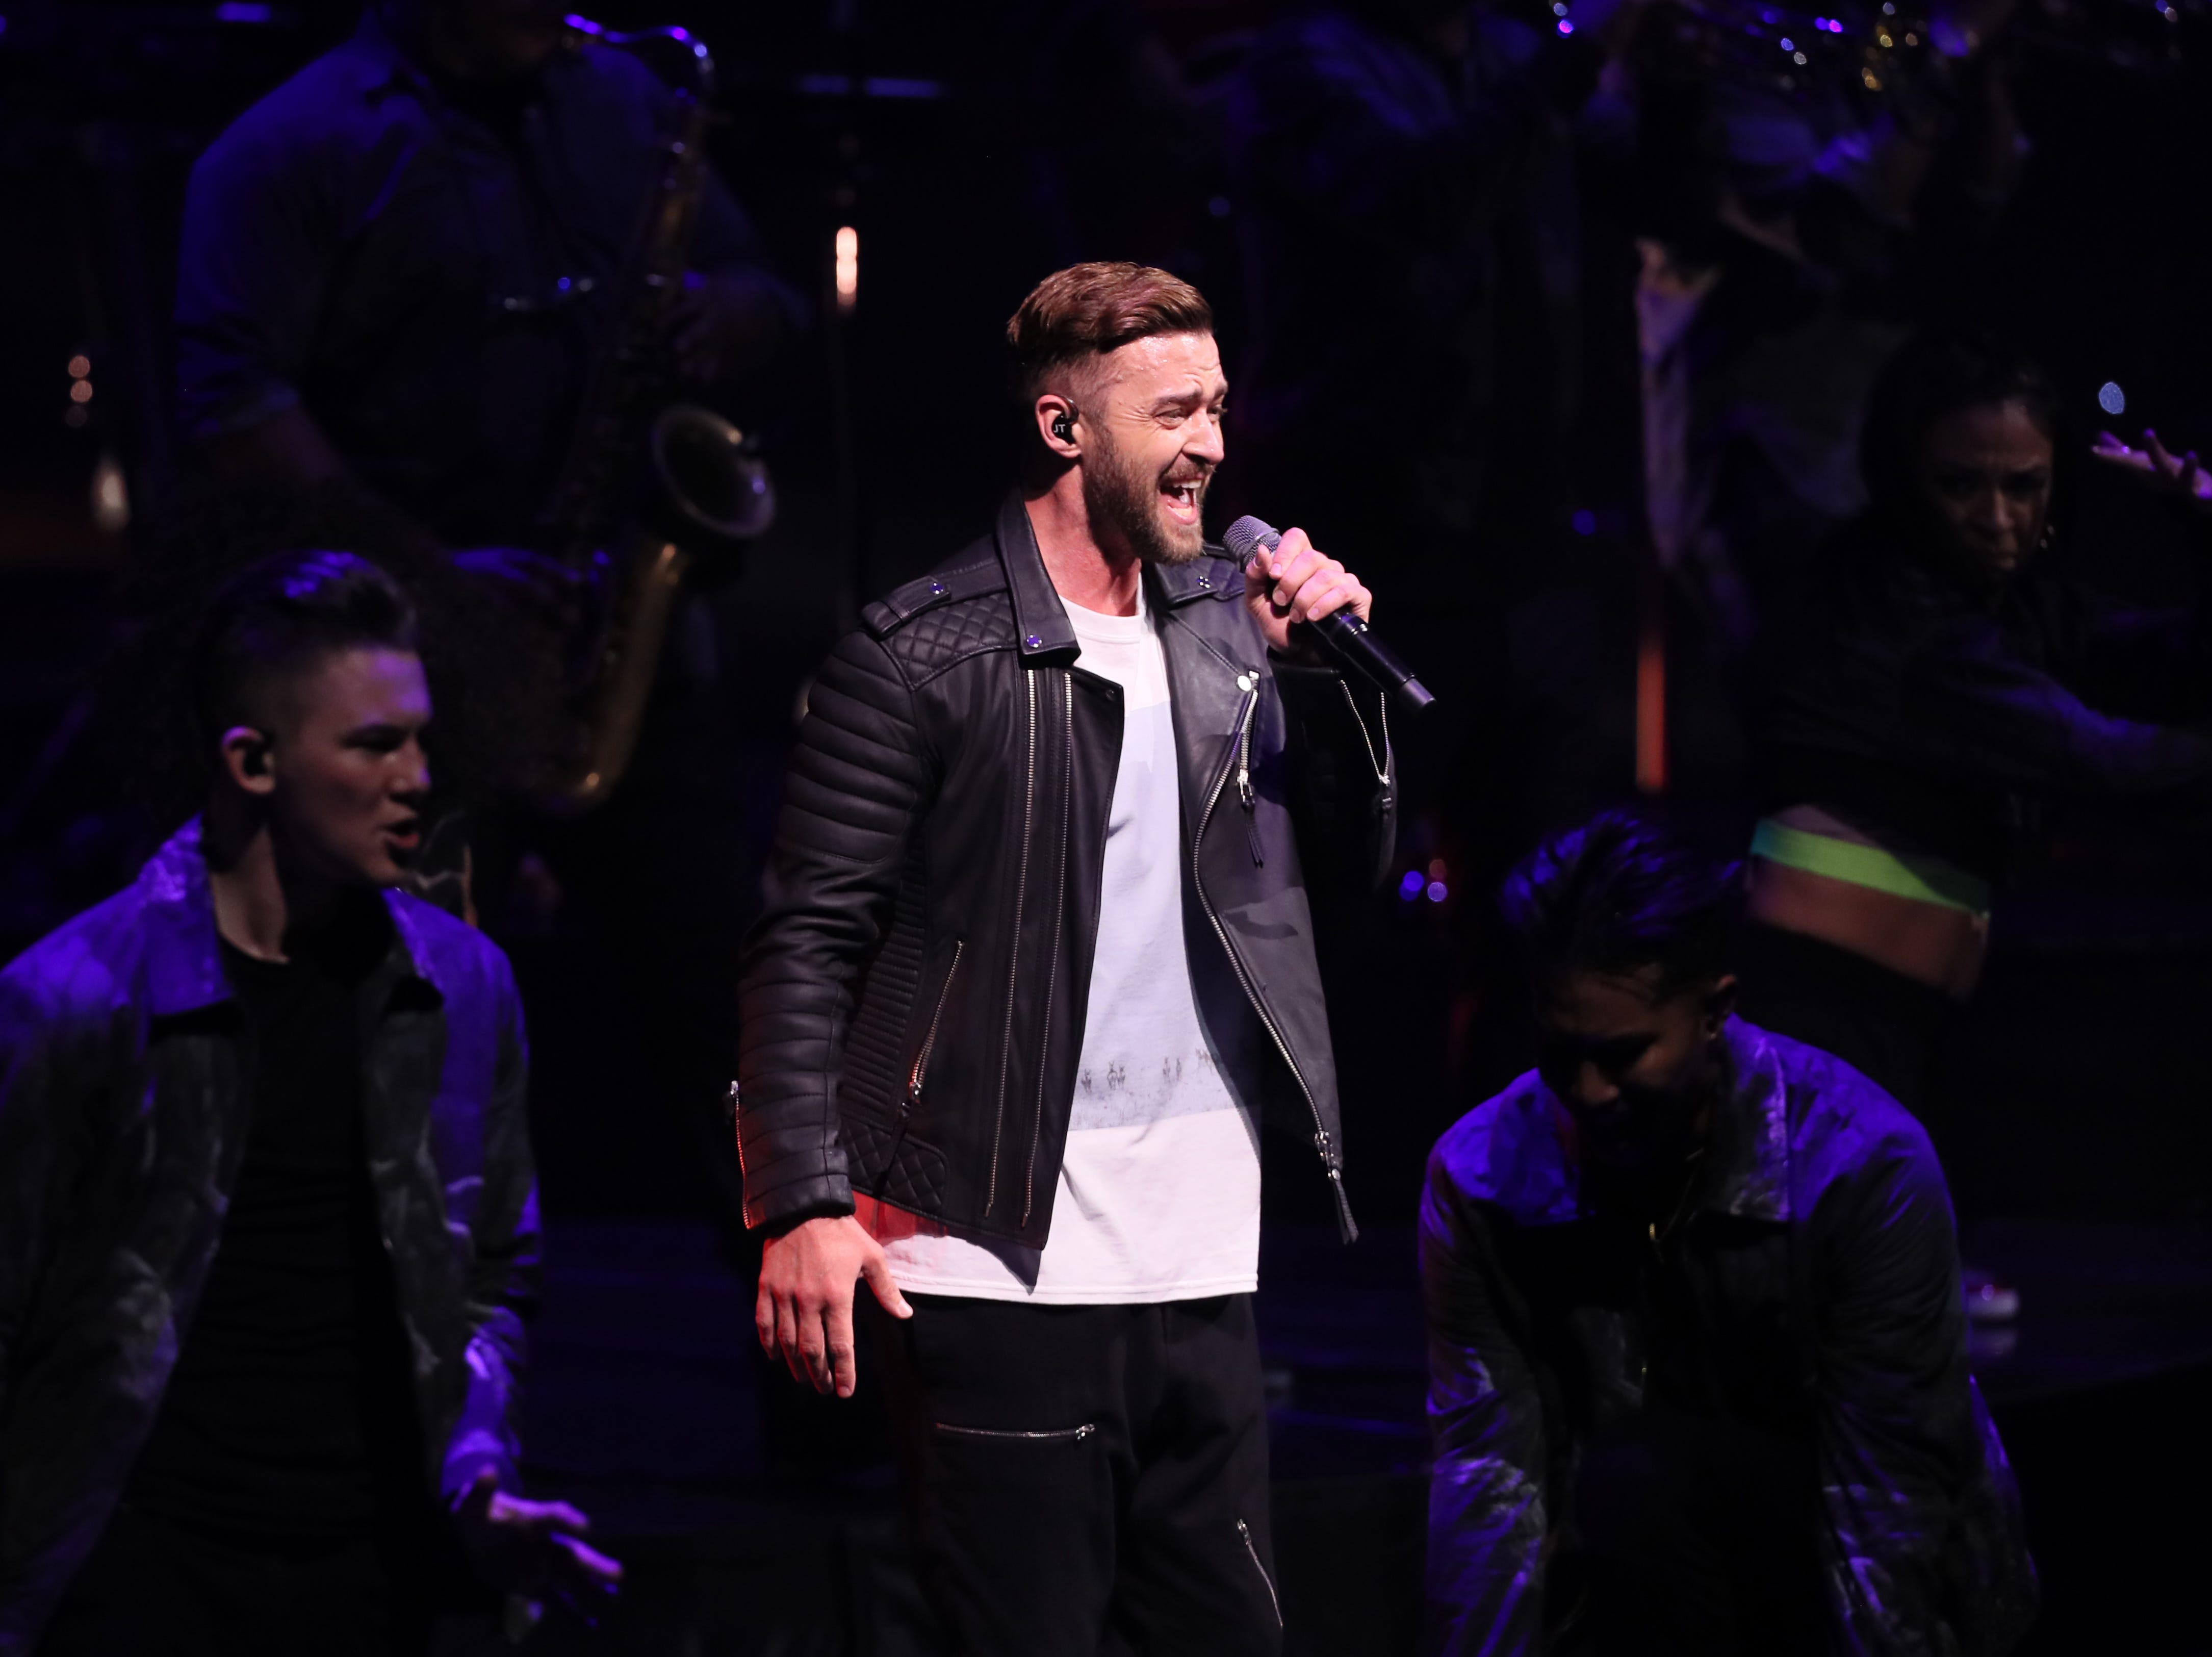 Justin Timberlake performs at the FedExForum, a part of his Man of the Woods tour on Saturday, Jan. 12, 2019.